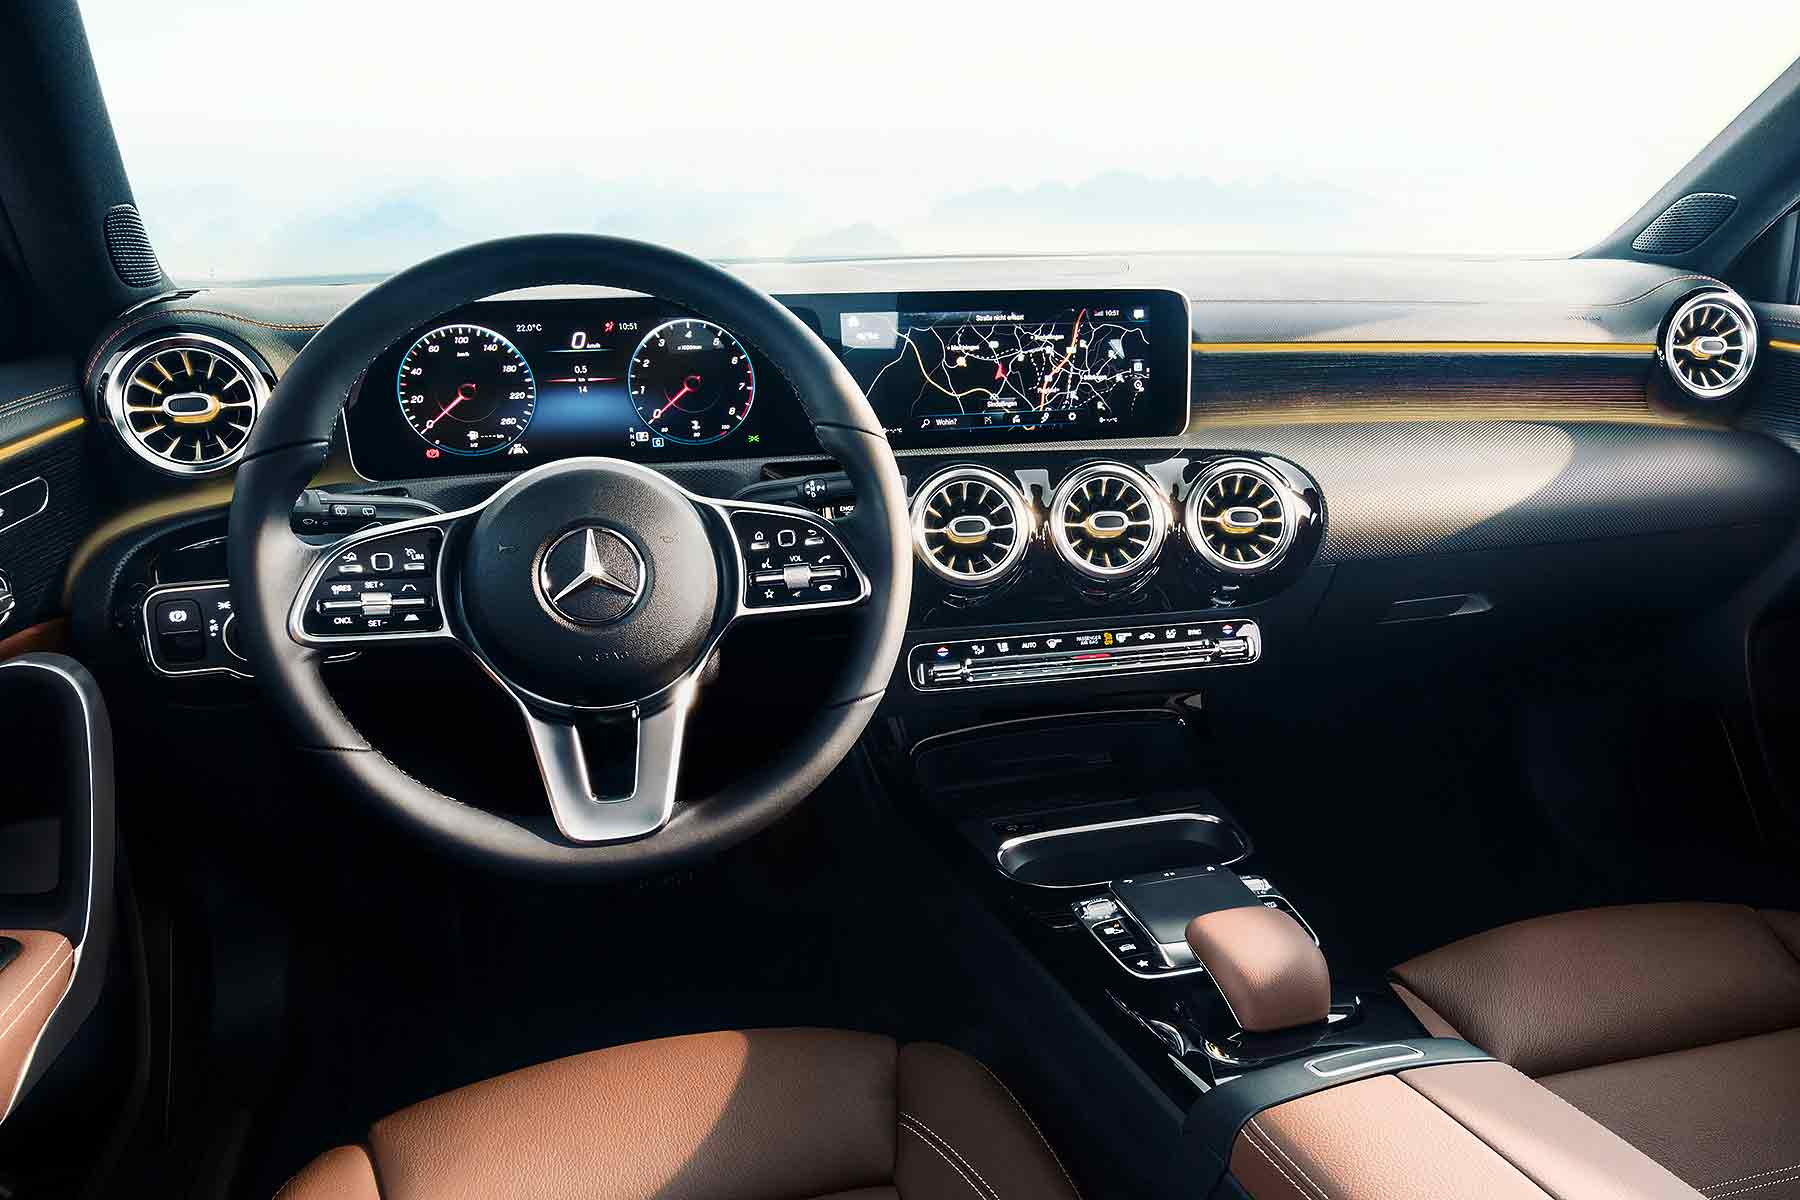 New 2018 mercedes benz a class interior revealed for Mercedes a klasse amg interieur